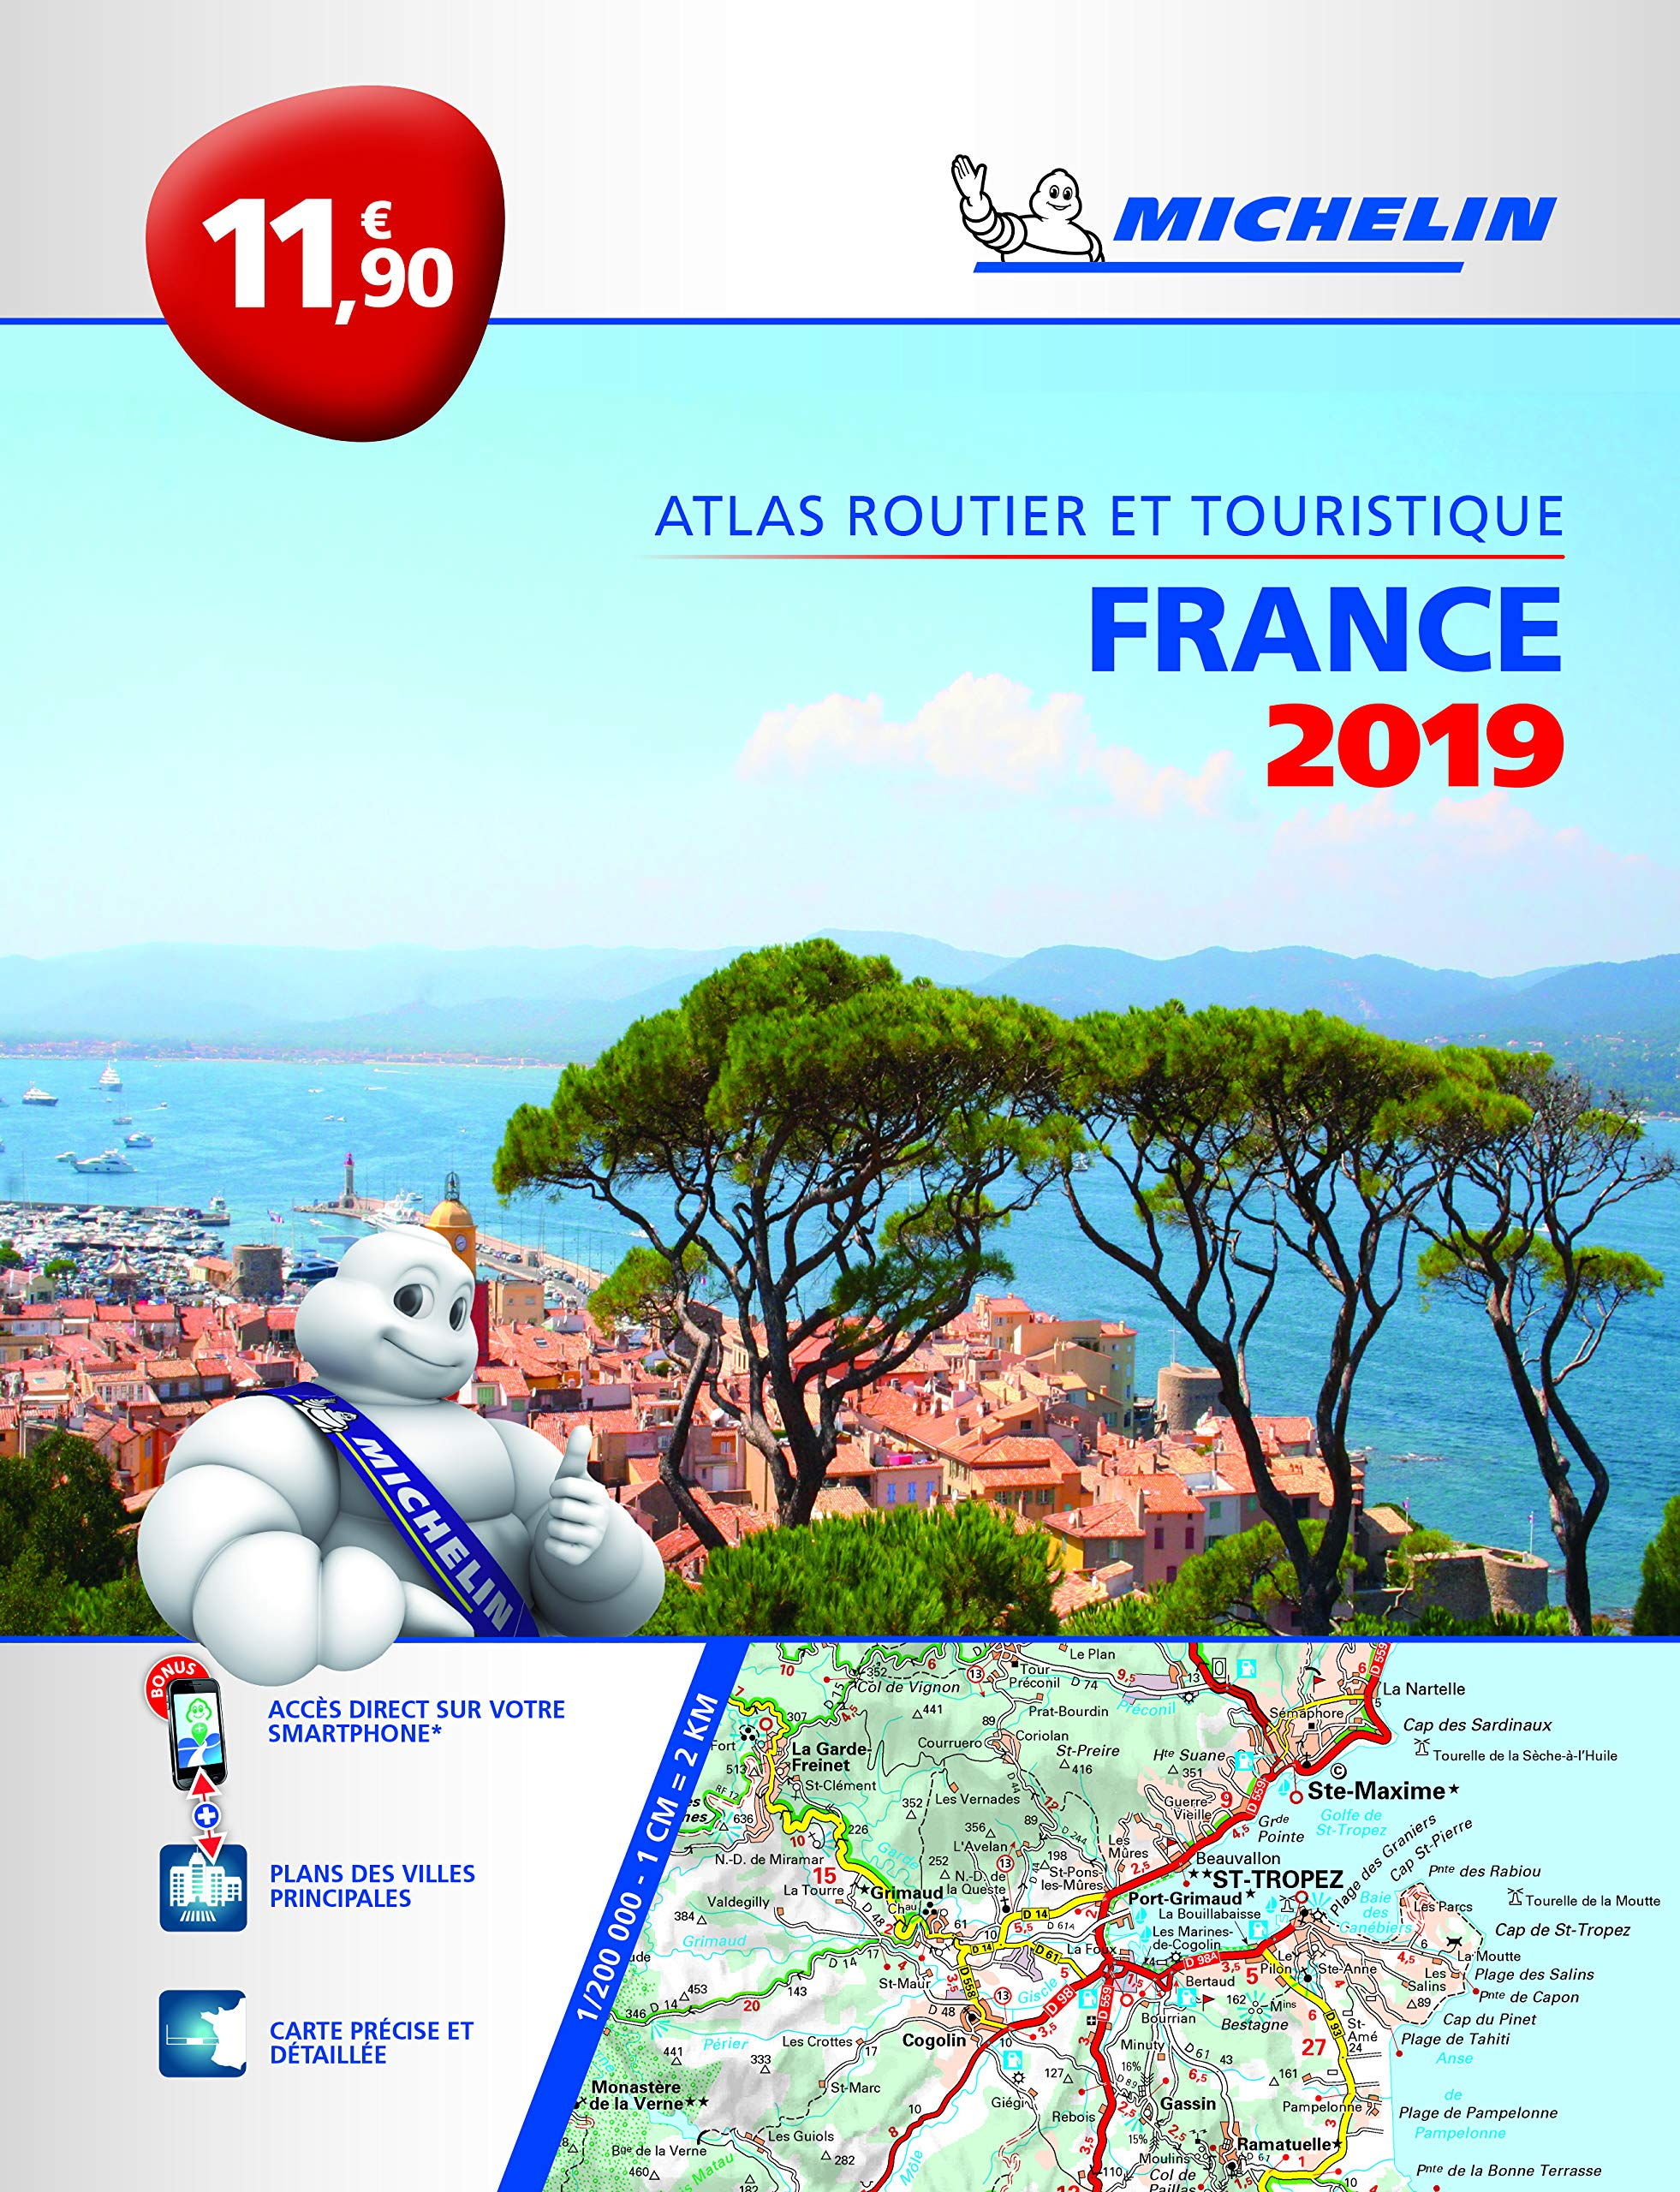 Atlas Routier et Touristique France Michelin 2019 Broché – 29 septembre 2018 2067235966 TRAVEL / Europe / France Gazetteers & Maps) Voyages / Cartes et Plans